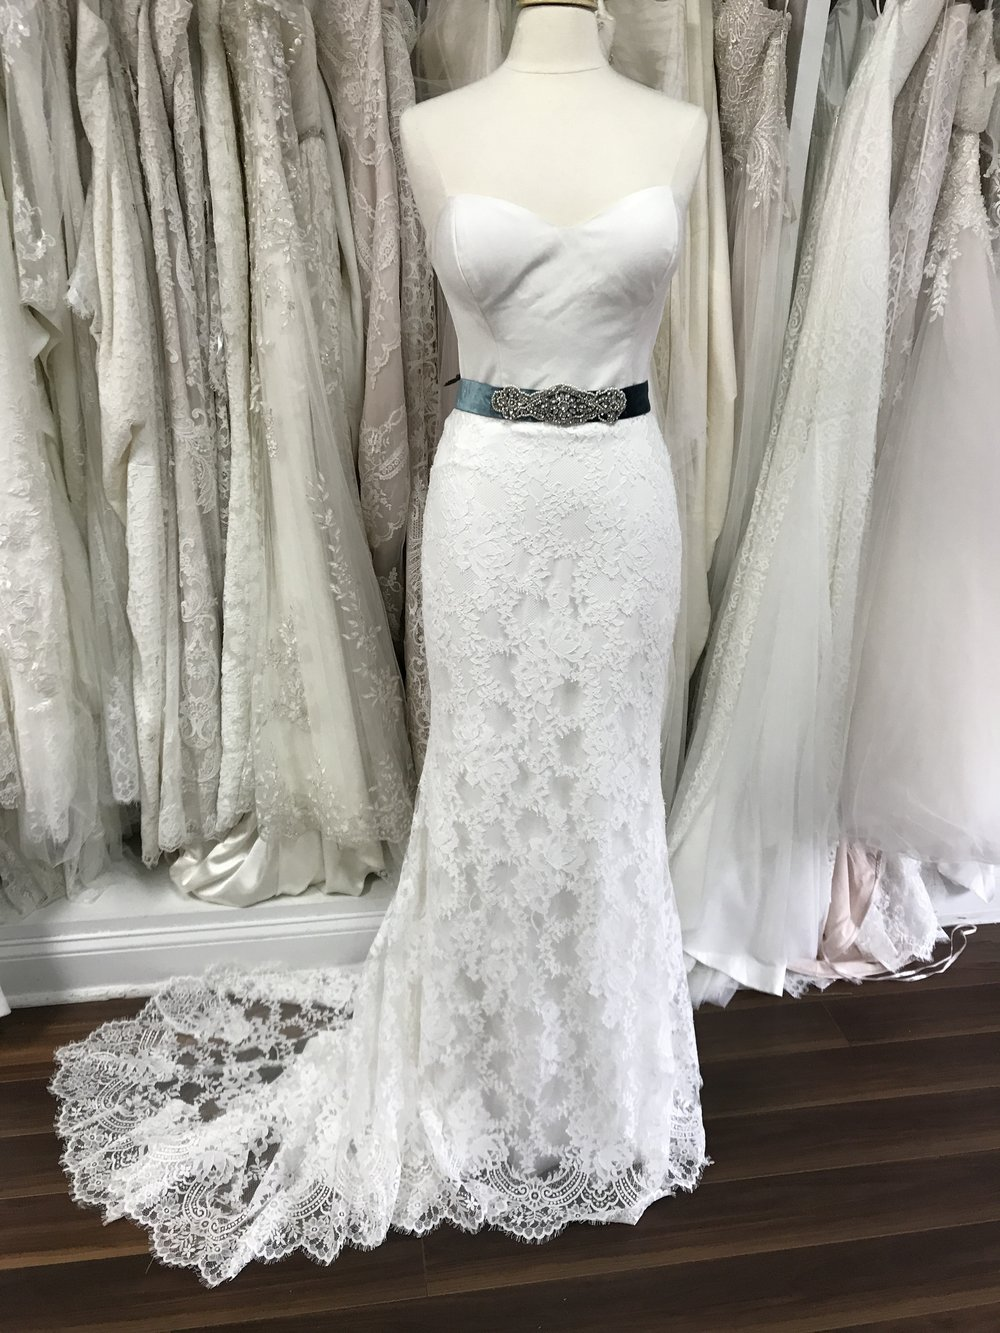 rebecca-schoneveld-ivory-and-beau-bridal-boutique-savannah-wedding-dresses-savannah-bridal-boutique-savannah-weddings-savannah-wedding-planner-savannah-florist-bridal-separates-handmade-wedding-dress-handmade-bride-indie-jaclyn-jordan-3.JPG